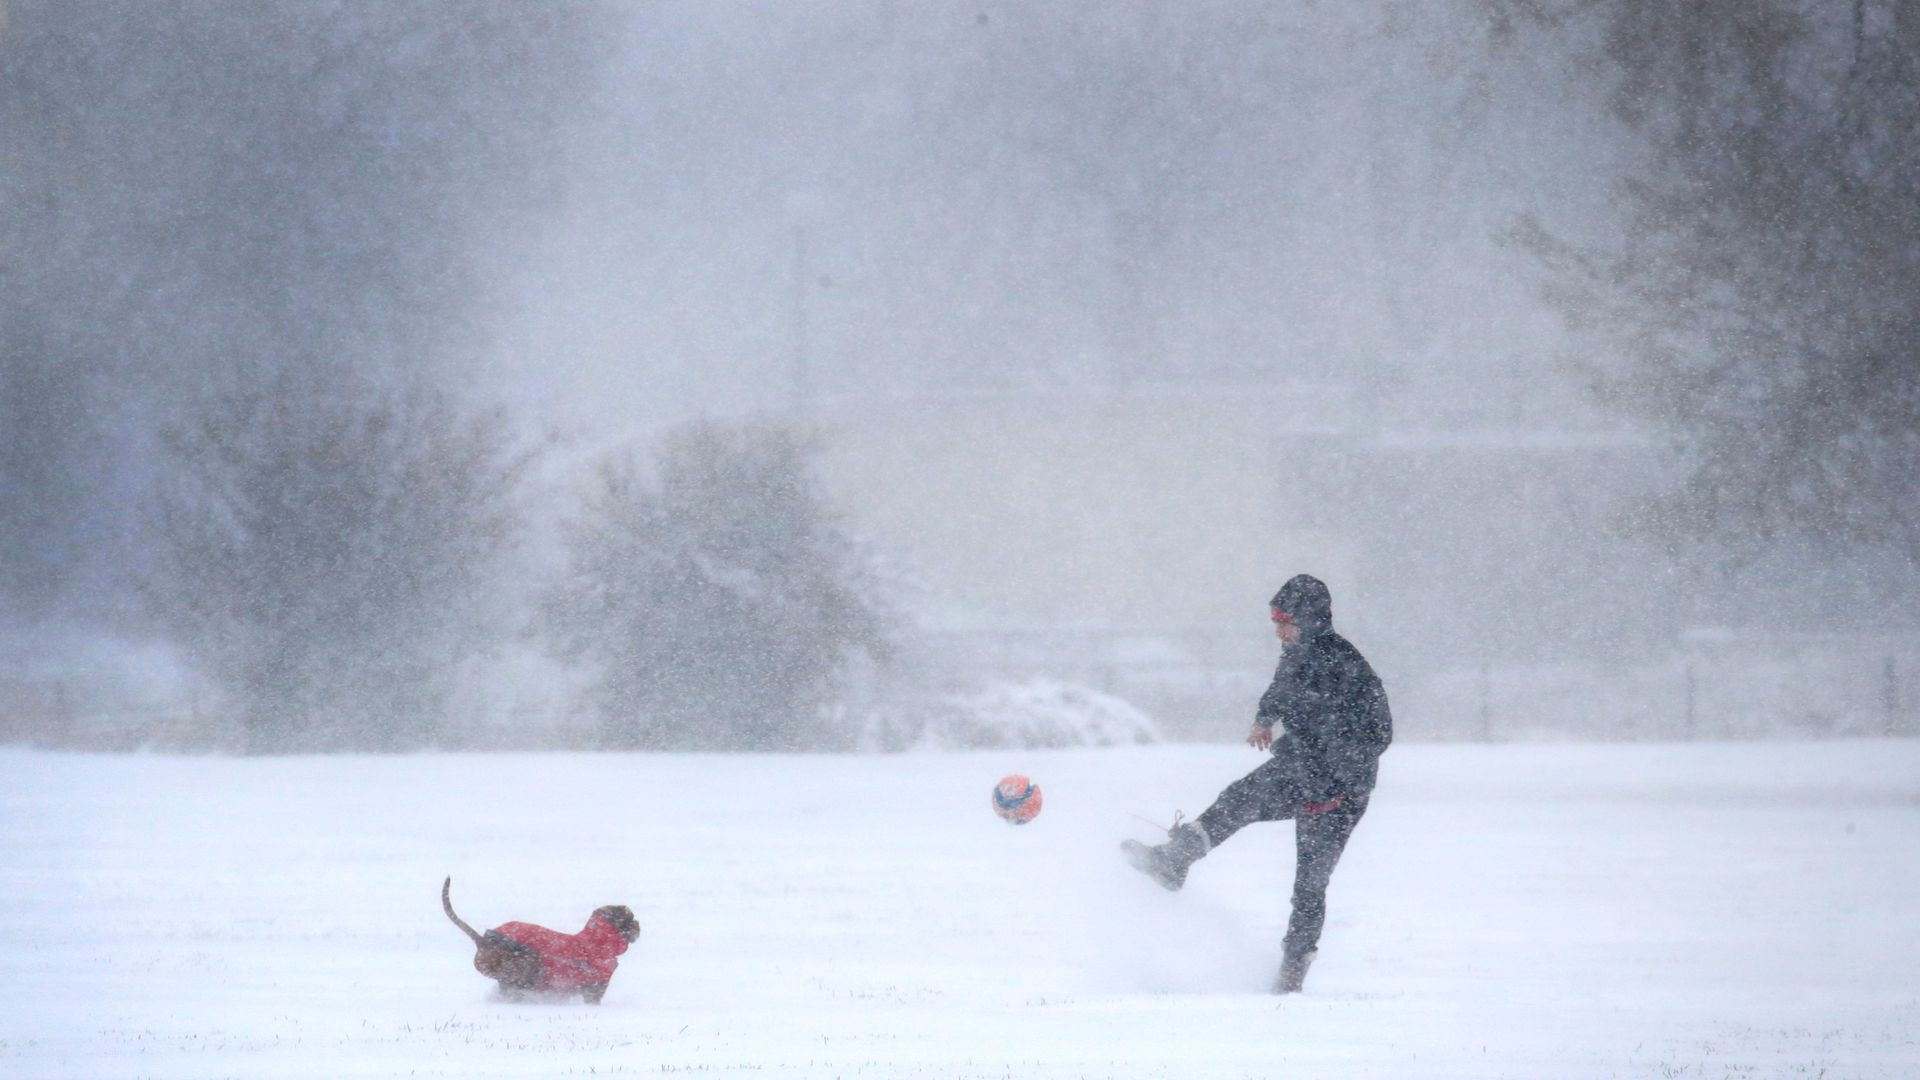 A resident plays with his dog as snow falls in Humboldt Park on November 11, 2019 in Chicago